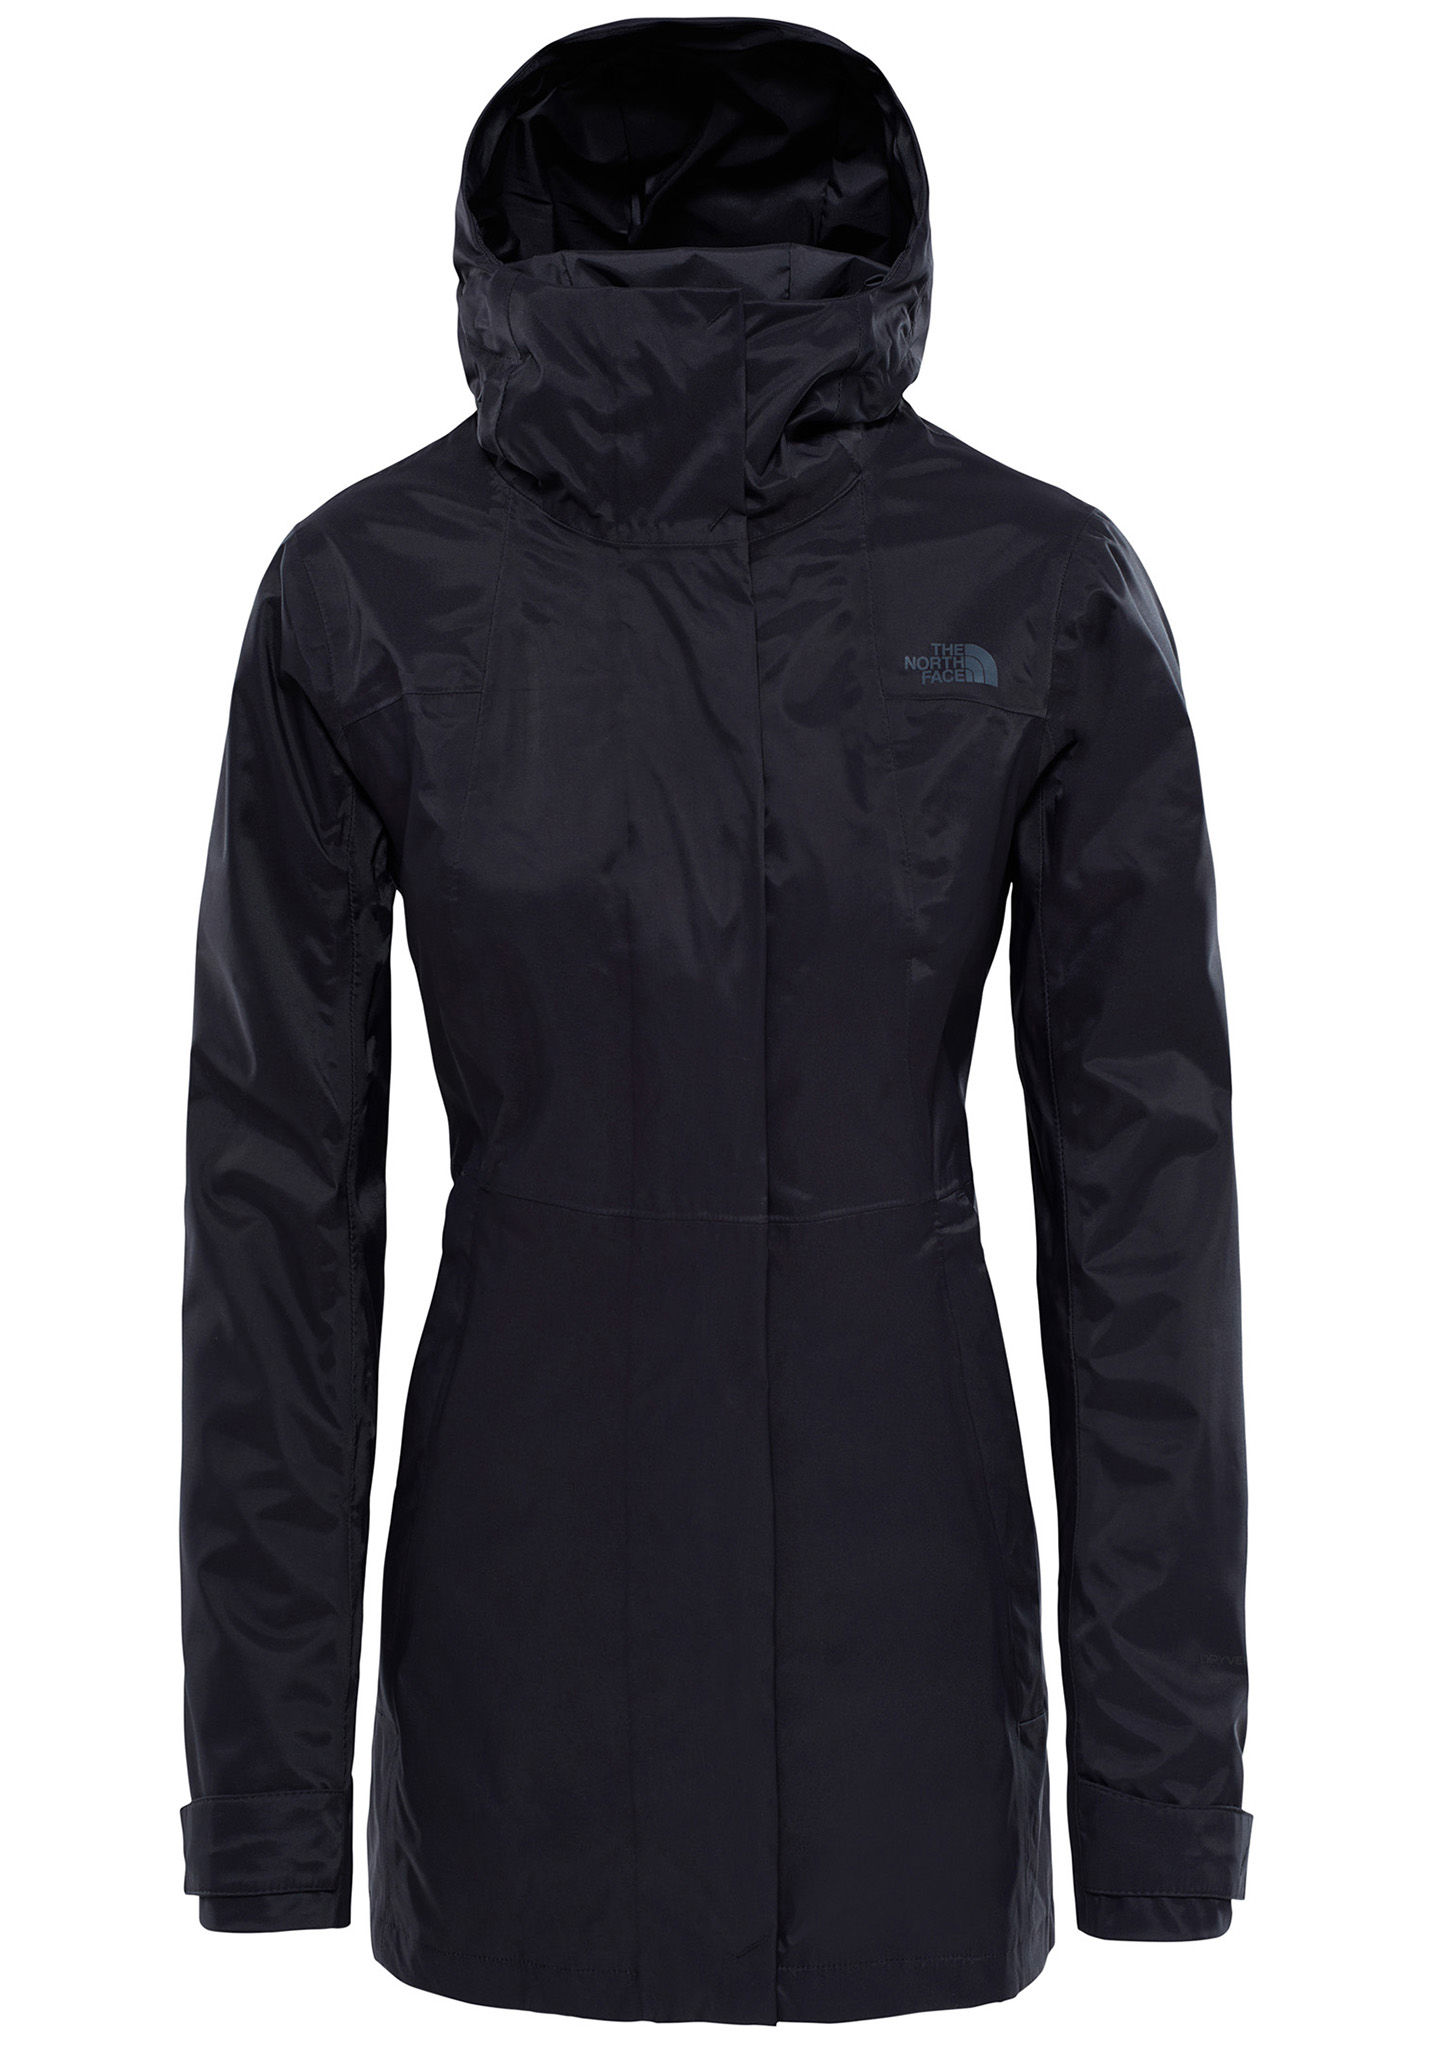 8717f810fc4f THE NORTH FACE City Midi Trench - Coat for Women - Black - Planet Sports